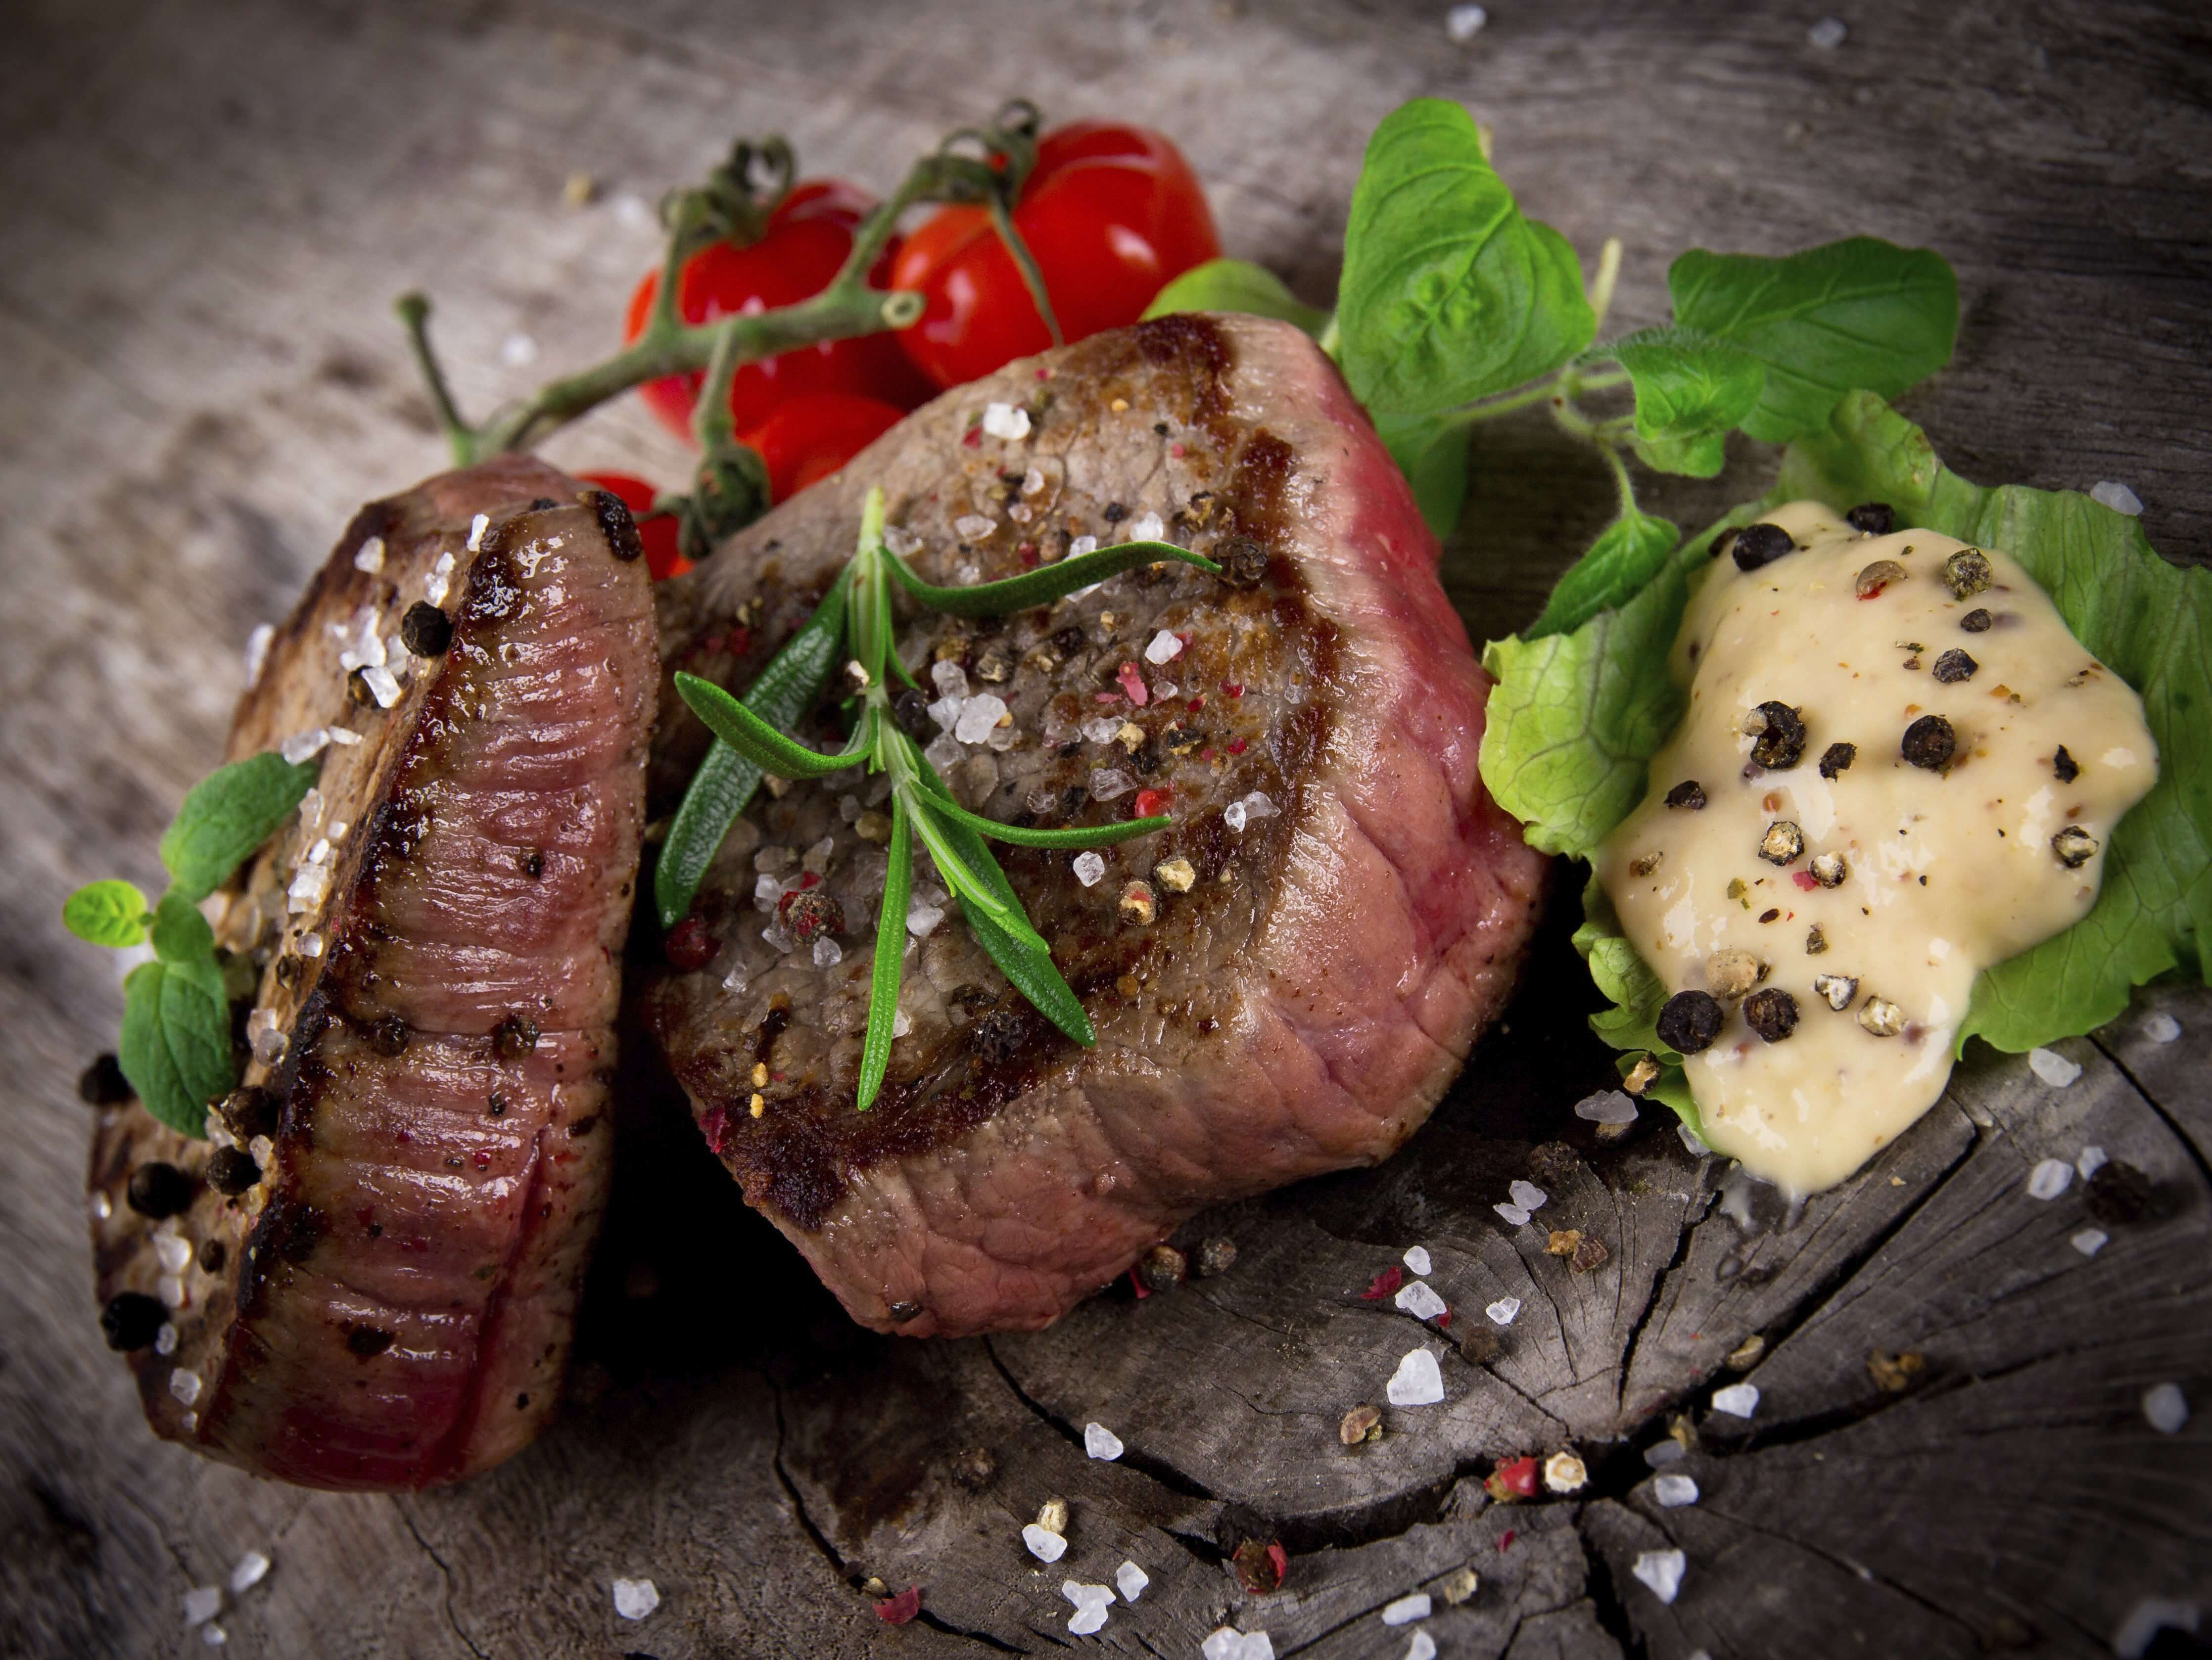 Beef Steak Background images